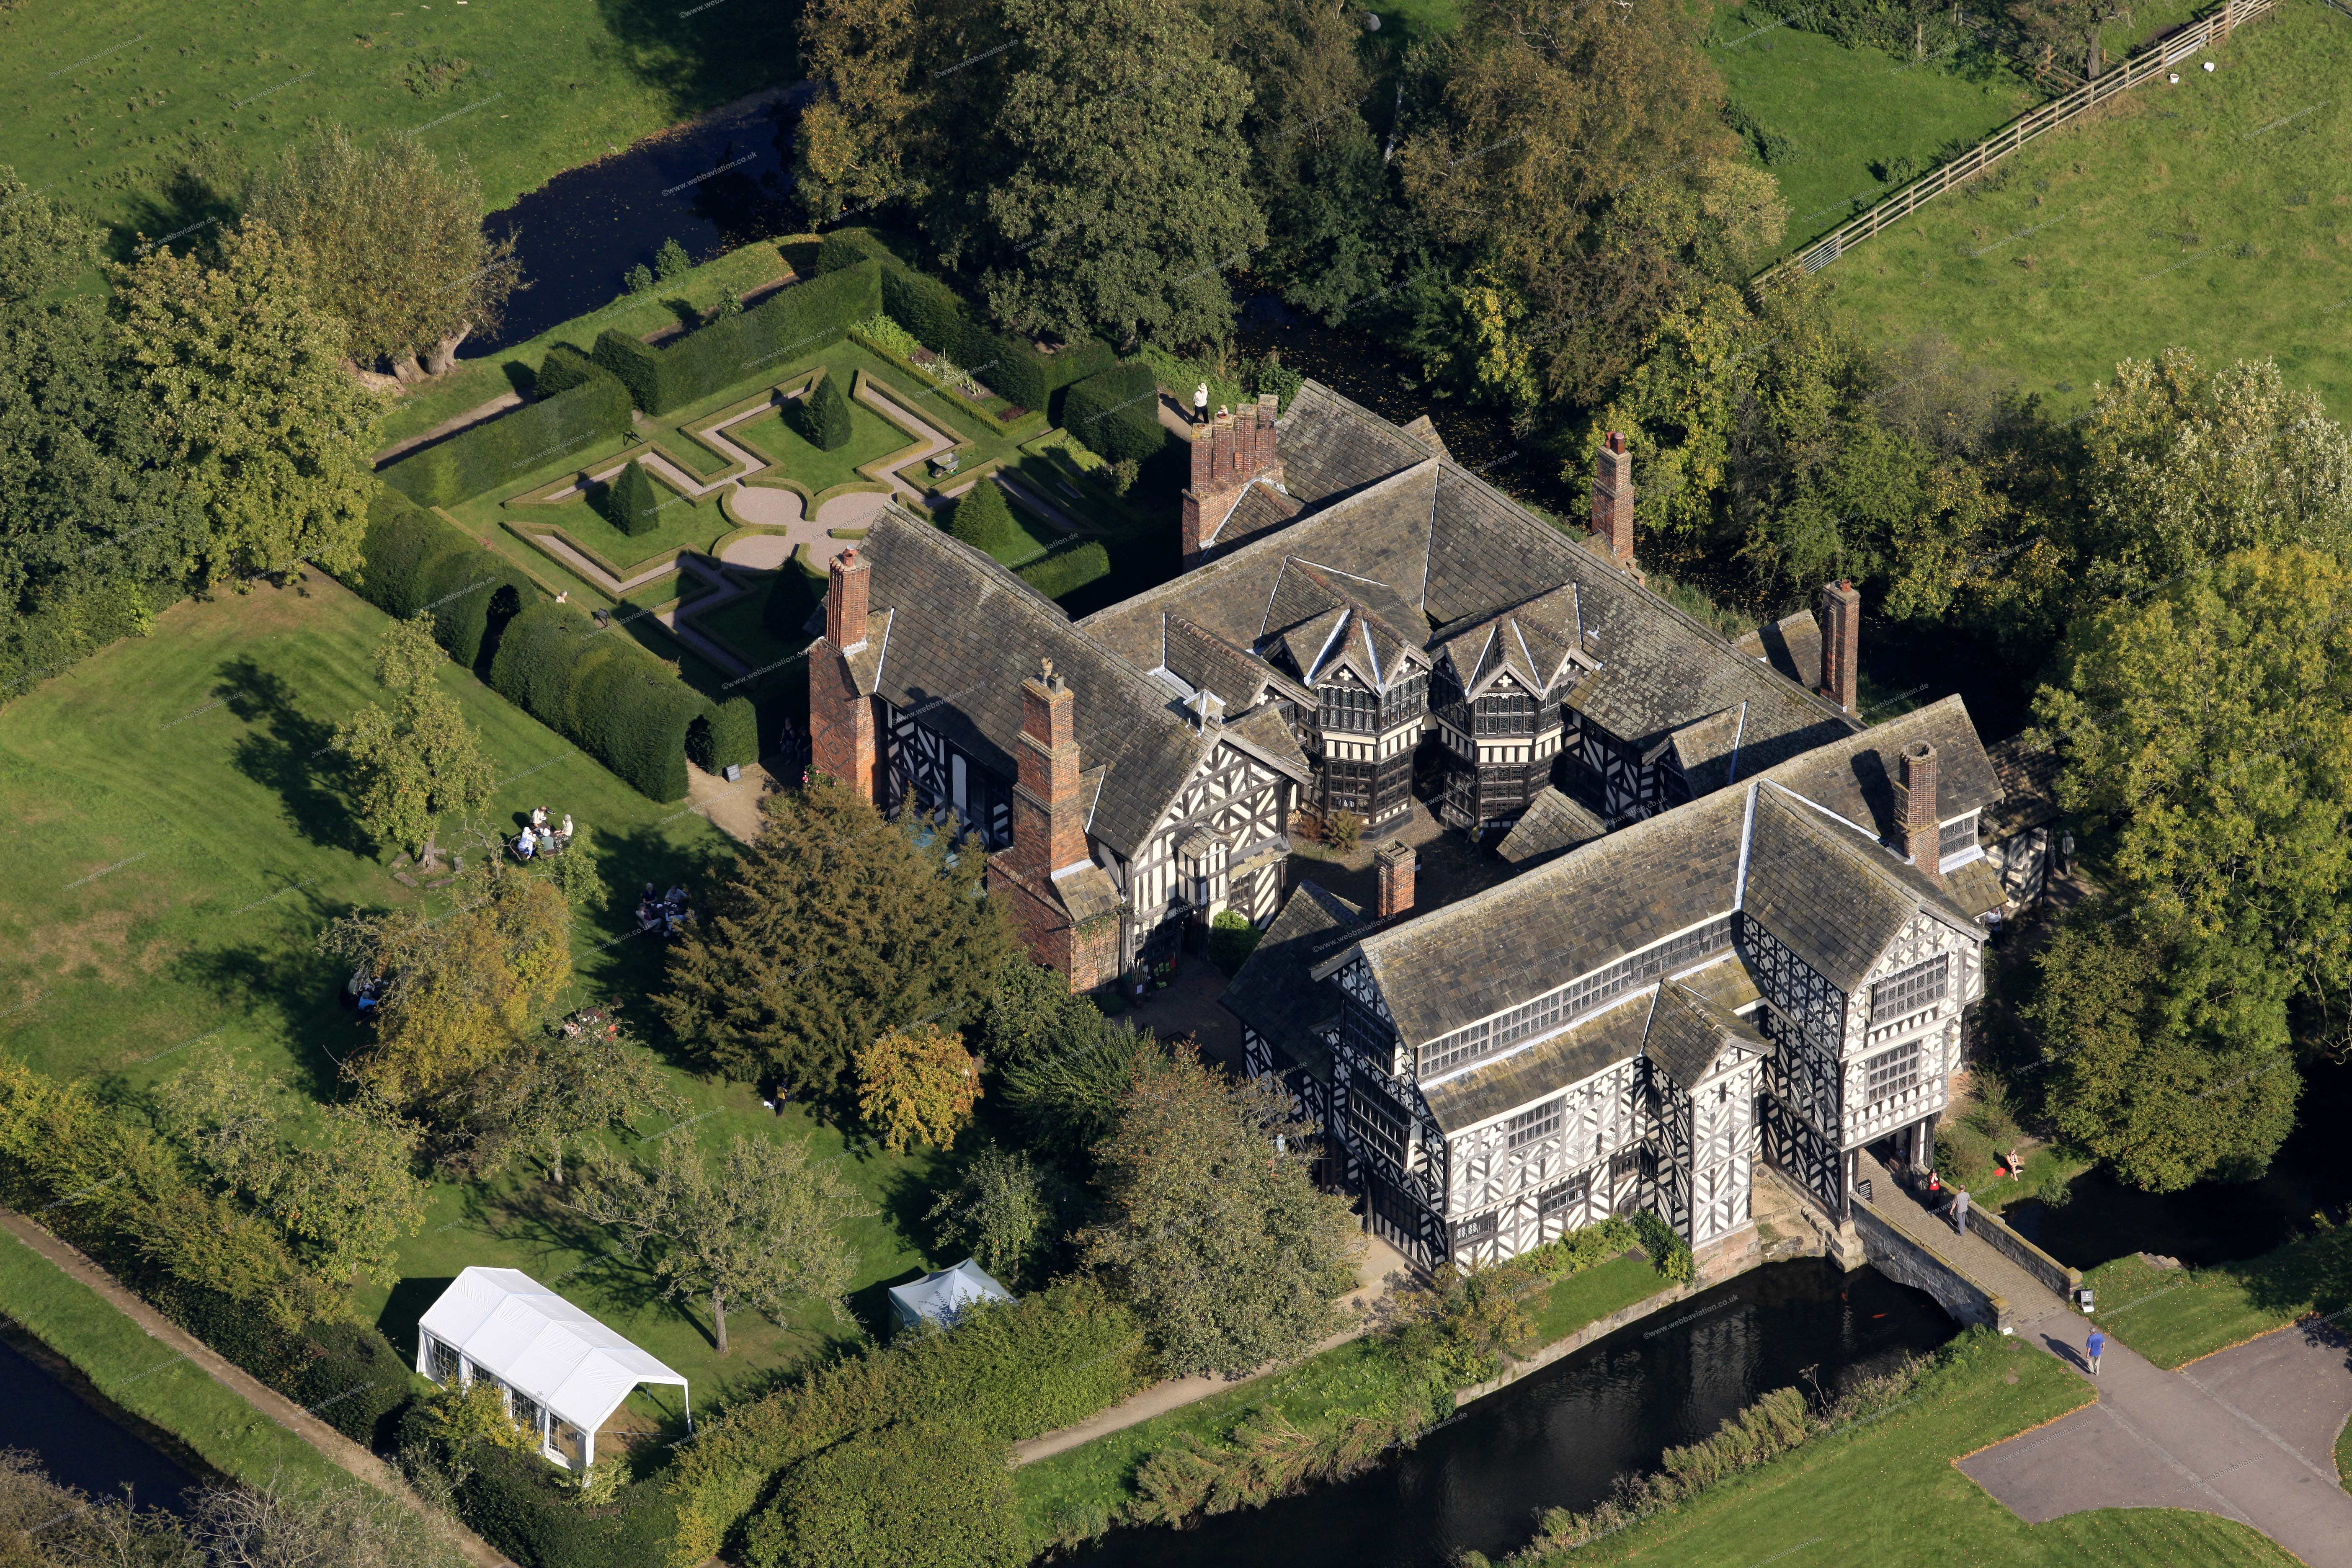 Aerial Photographs Of Little Moreton Hall A Tudor Manor House In Cheshire